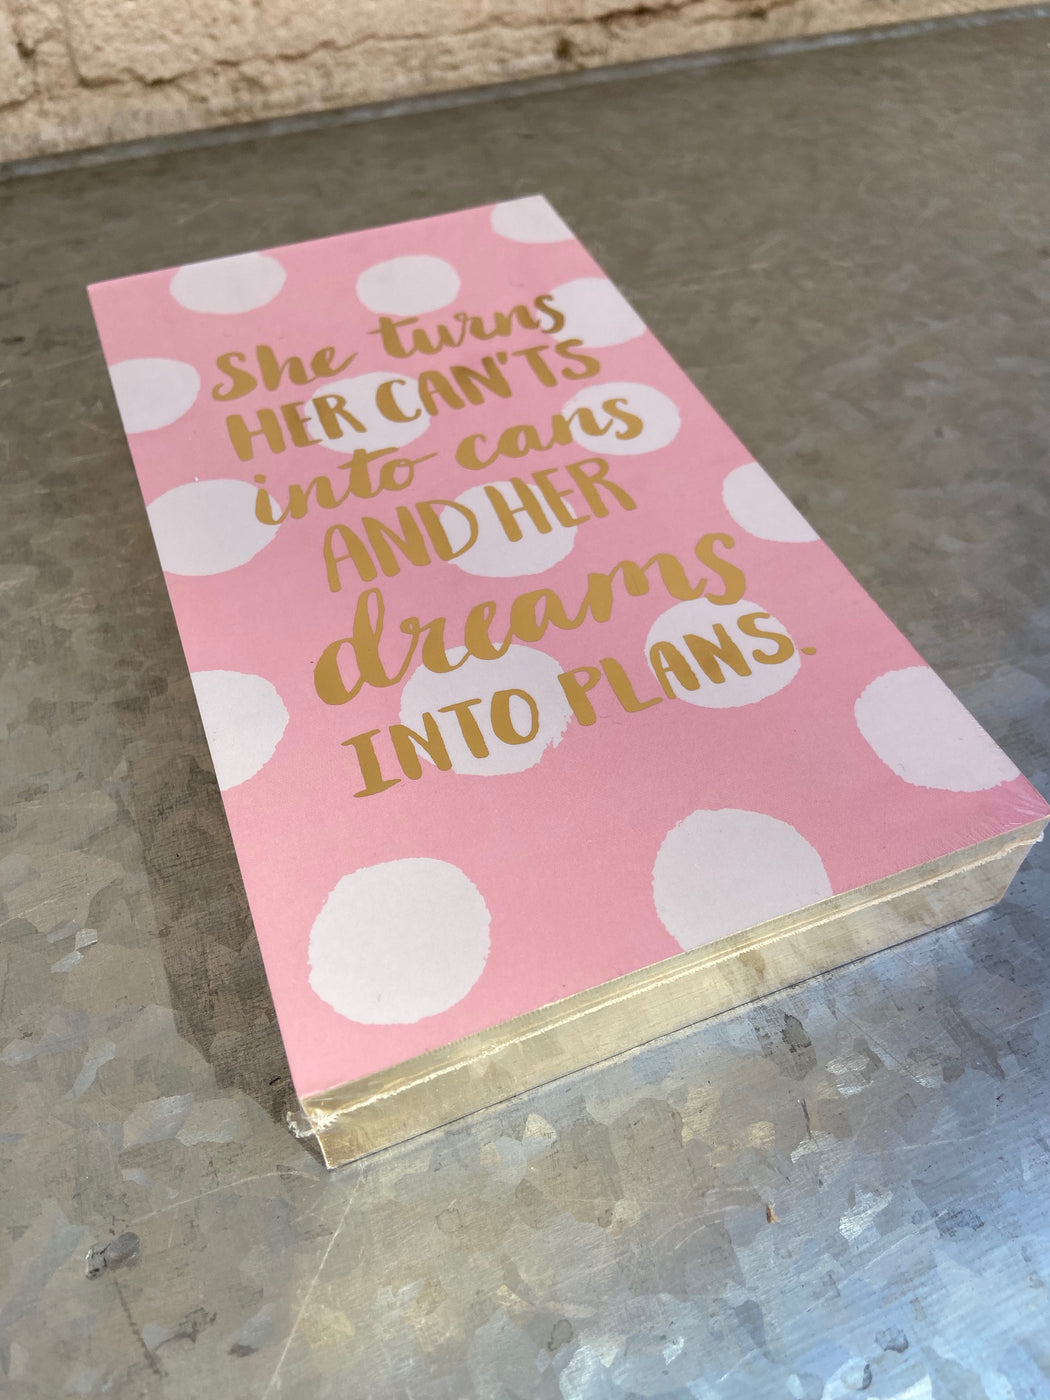 200 sheet gold gilded edged list pad with gold foiled softcover features inspiring sentiments on each page. 7.5H x 4.25W